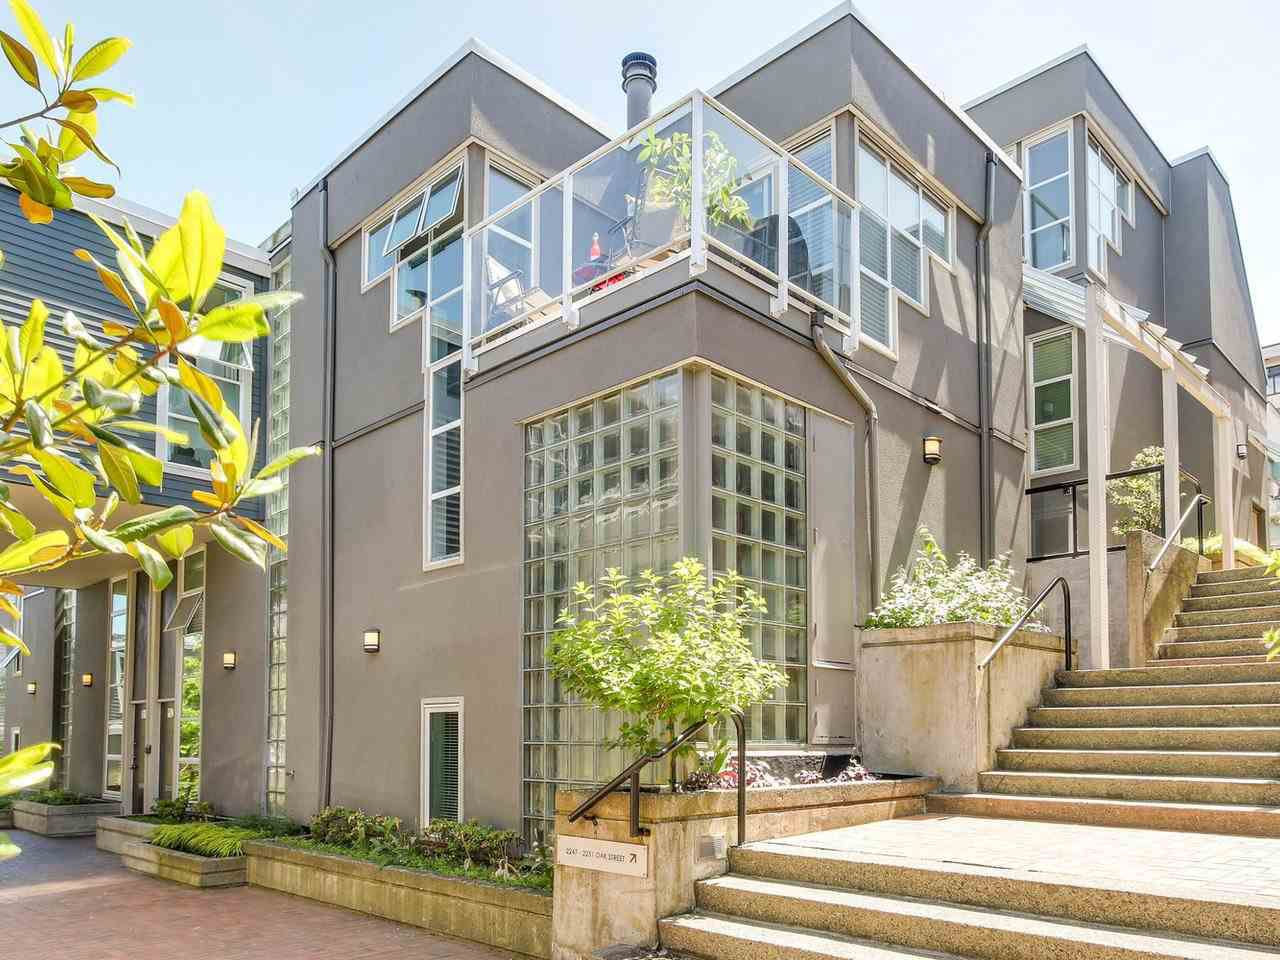 """Main Photo: 2247 OAK Street in Vancouver: Fairview VW Townhouse for sale in """"The Sixth Estates"""" (Vancouver West)  : MLS®# R2175723"""